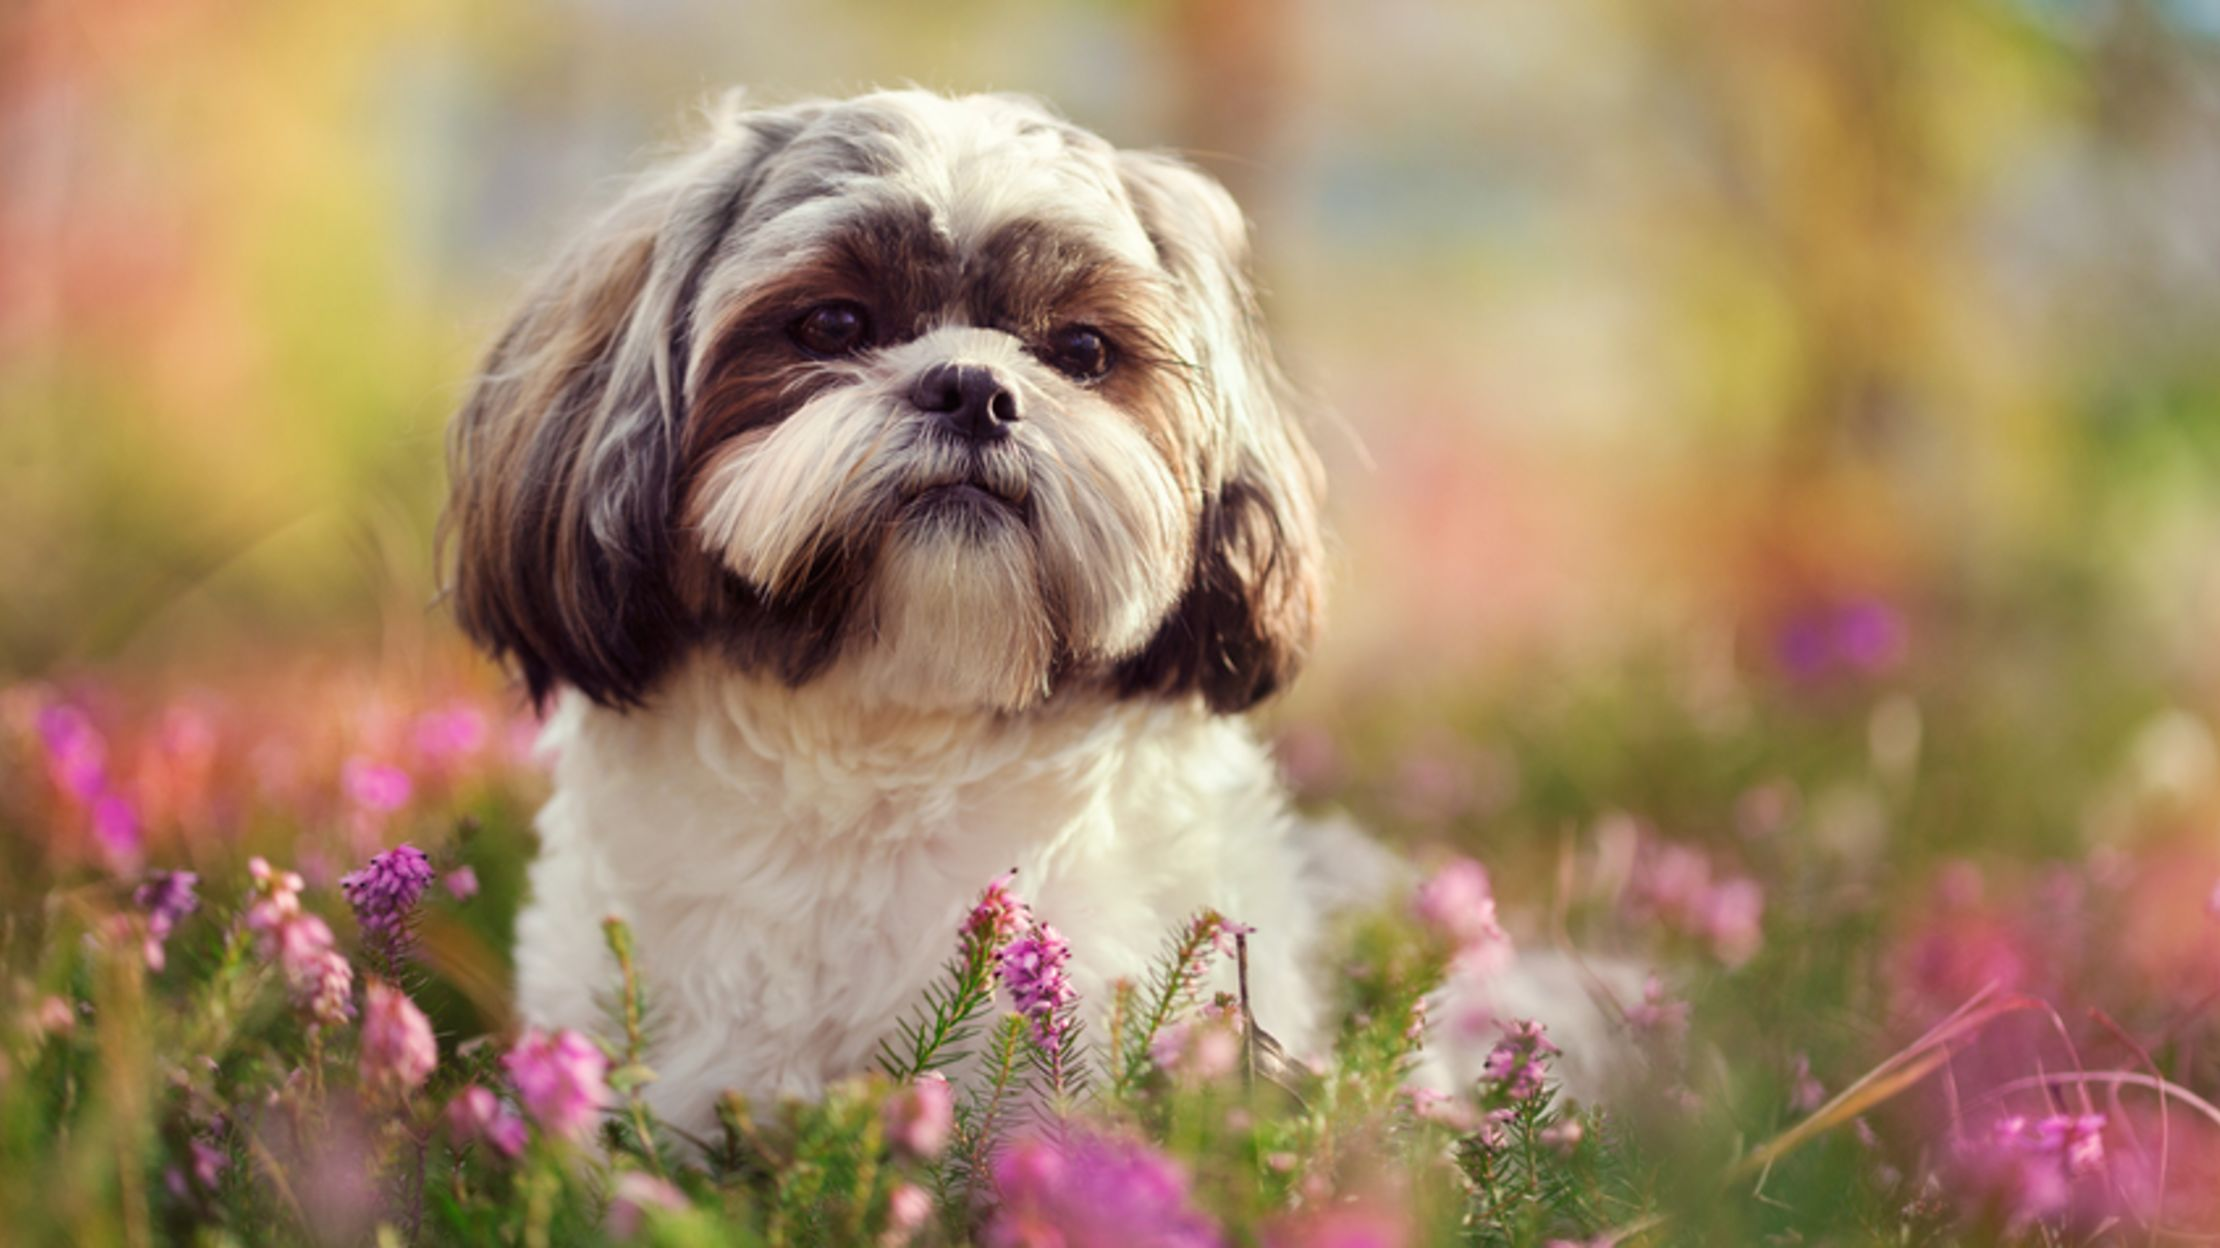 9 Fluffy Facts About the Shih Tzu